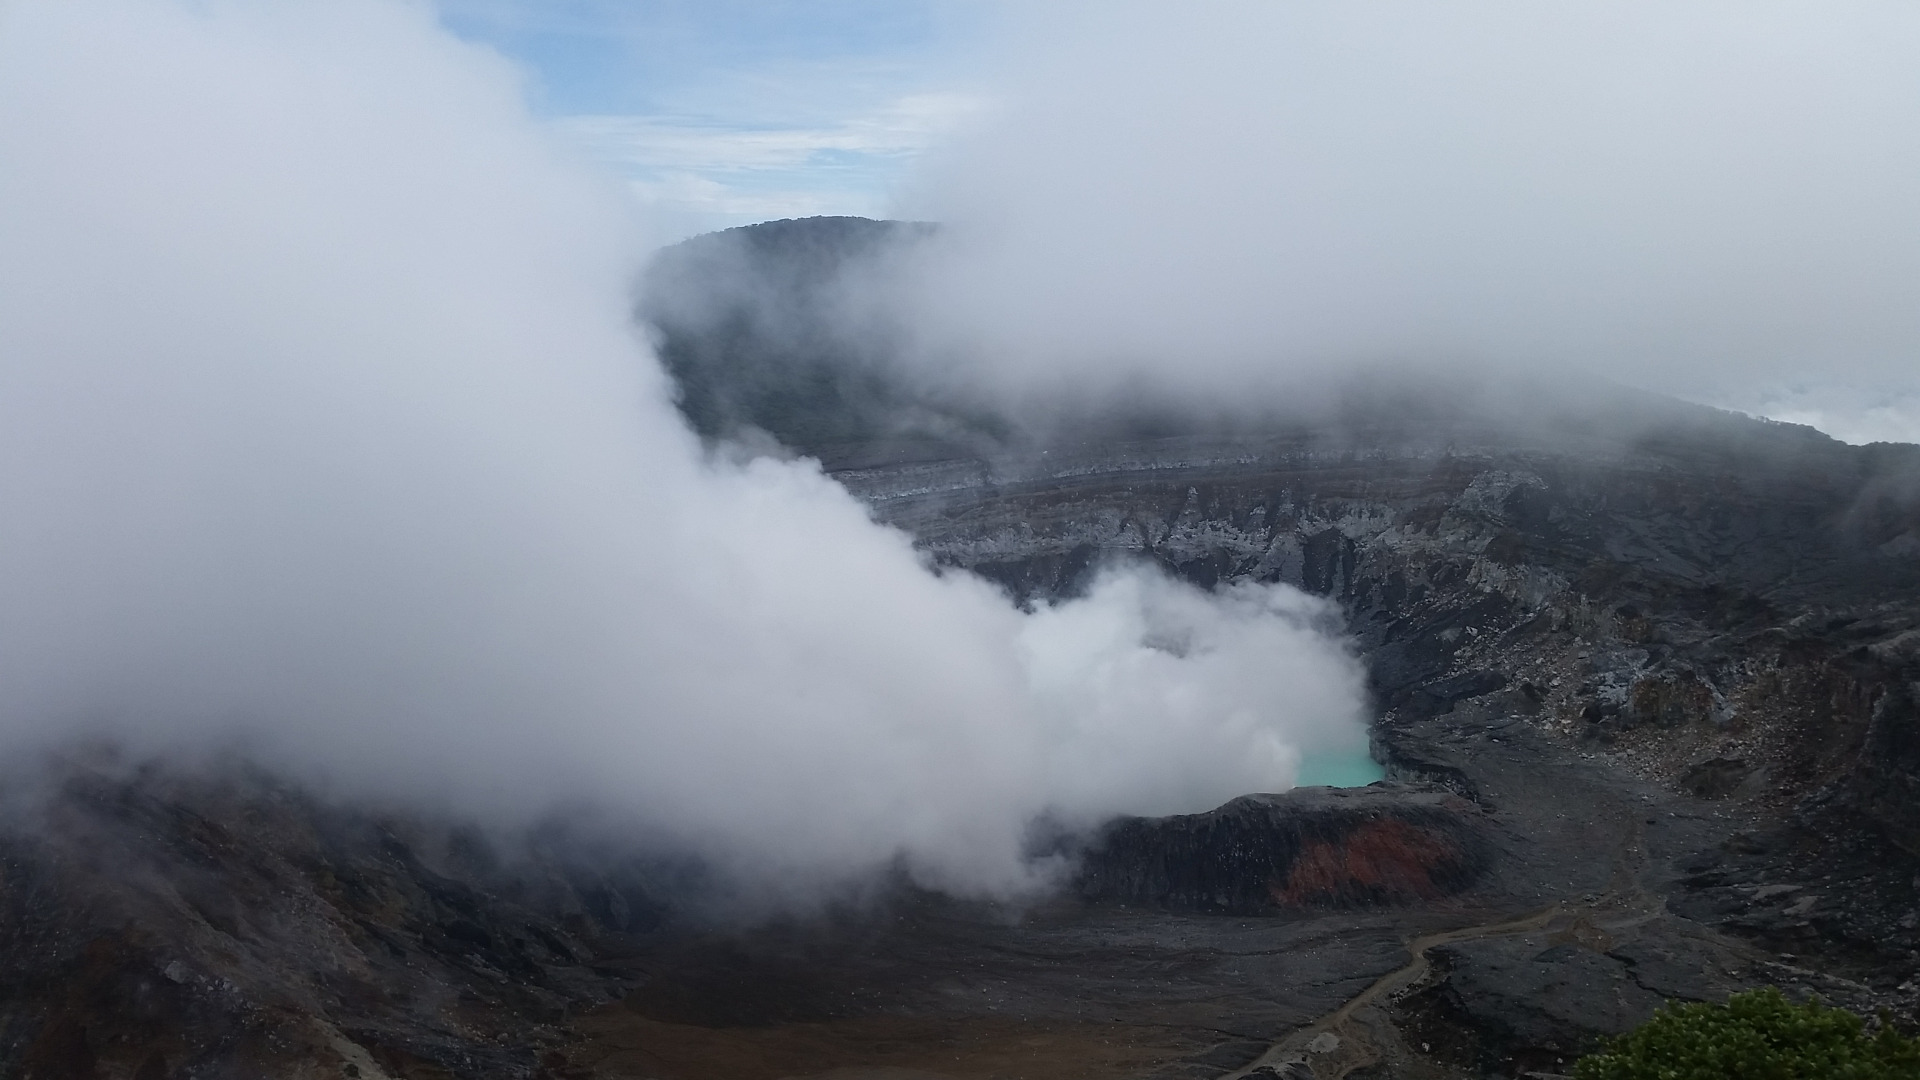 Live volcano that smoke still comes out from the crater